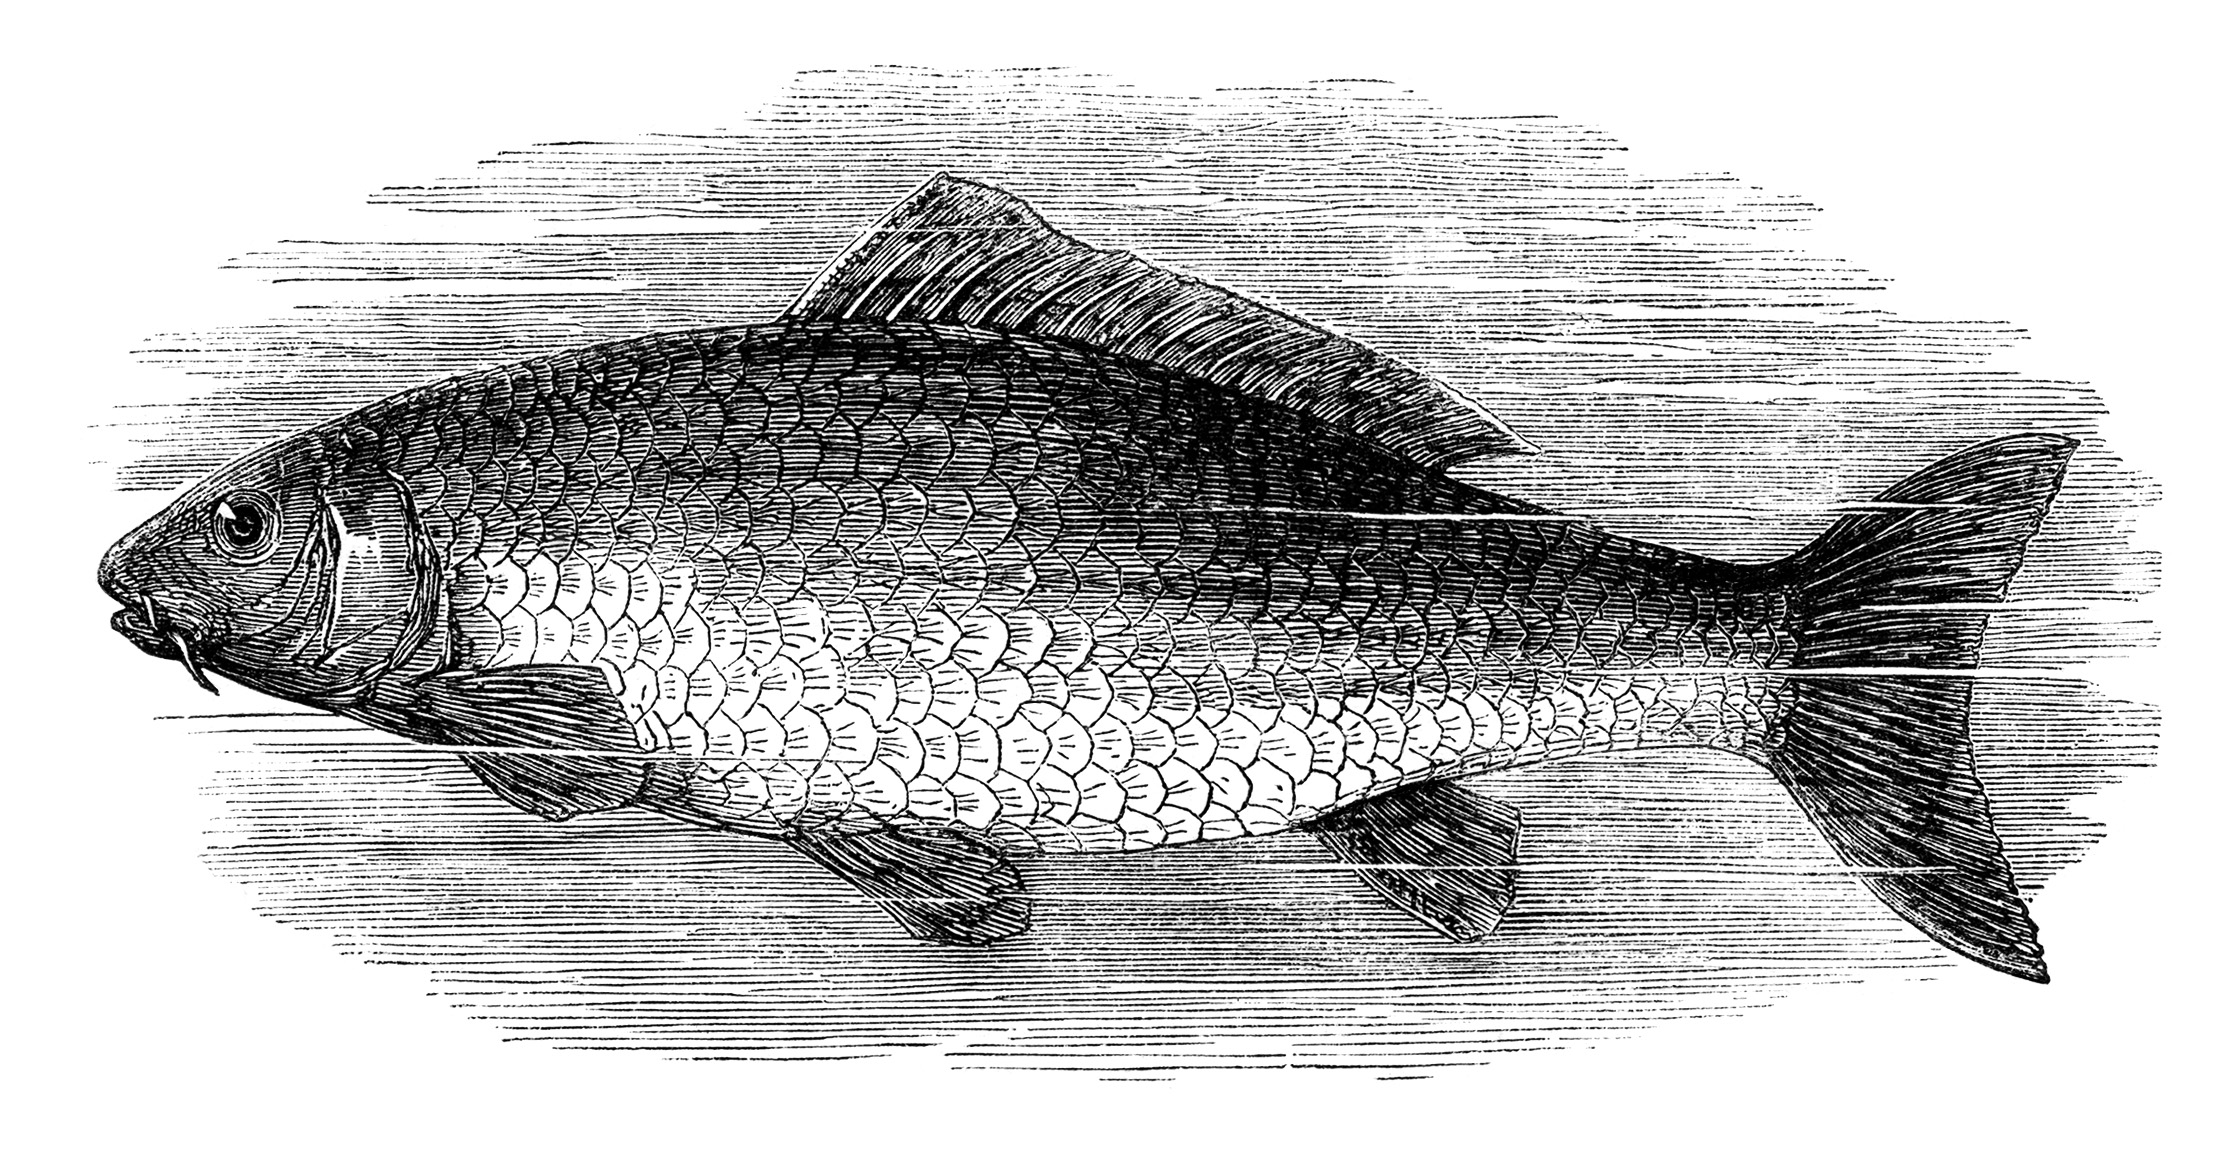 Free Vintage Fish Images ~ Salmon and Carp - Old Design ...